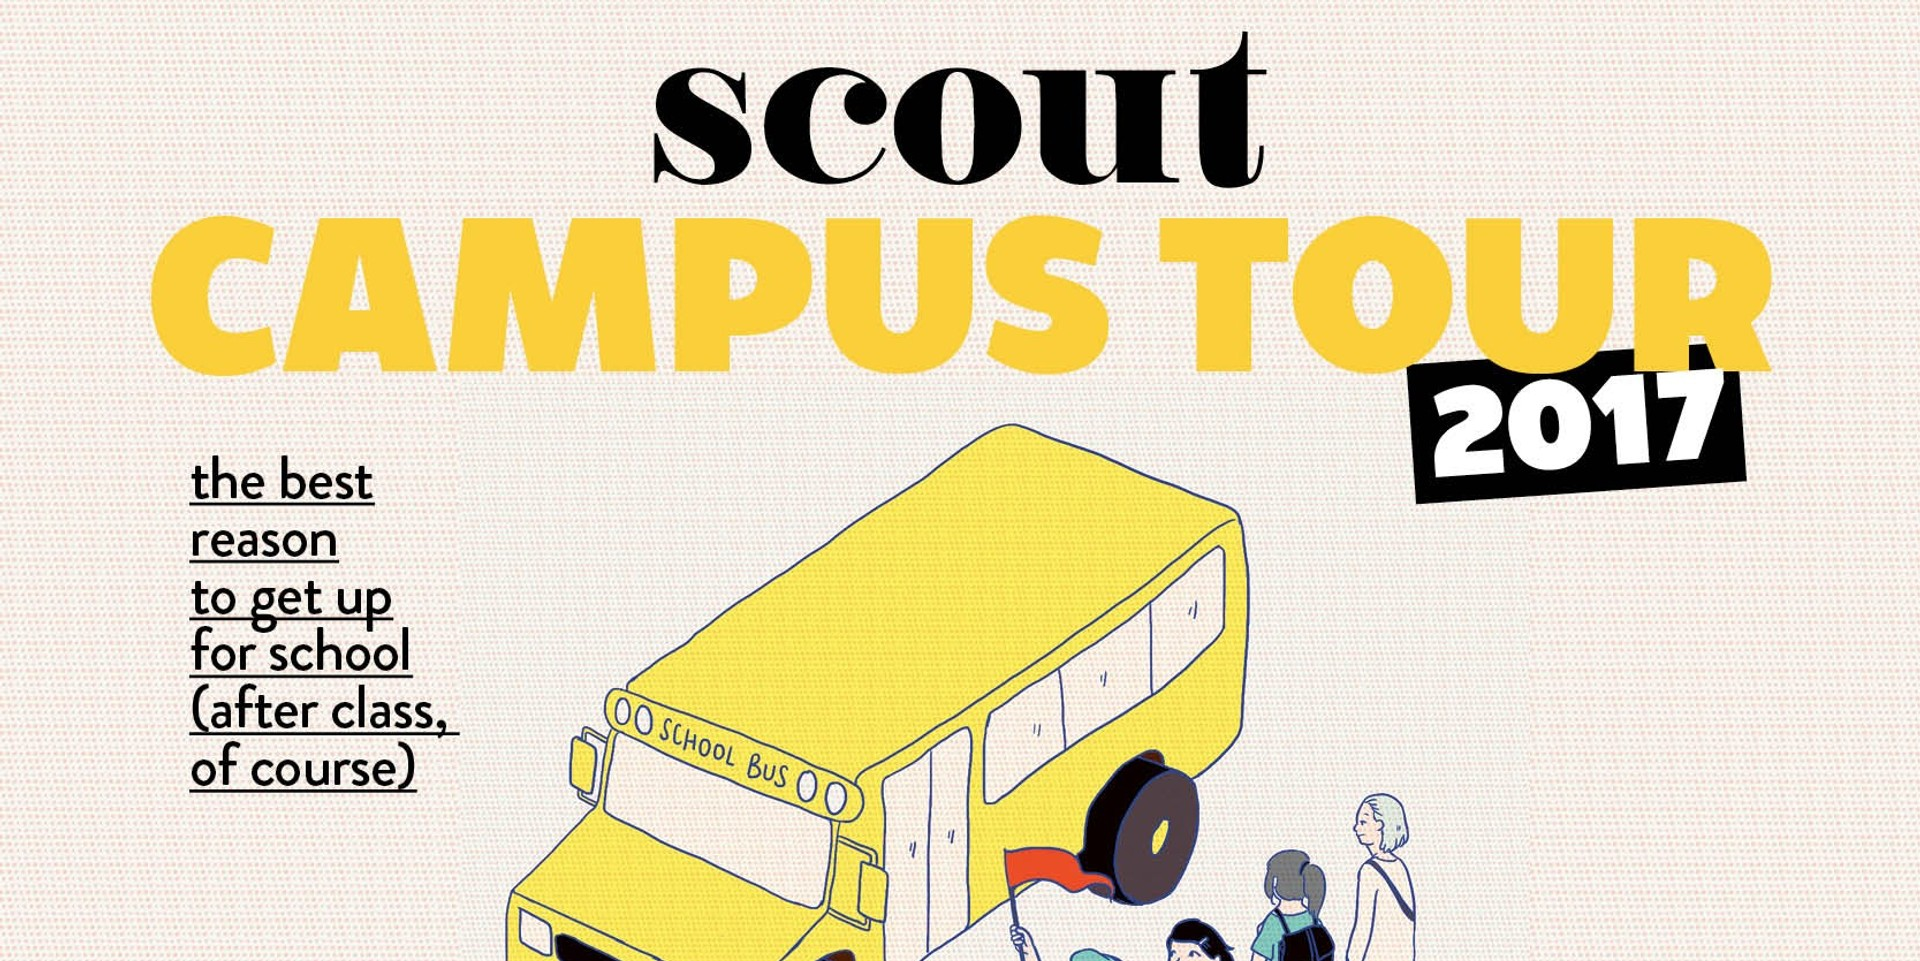 Scout kicks off this year's campus tours in UP Diliman